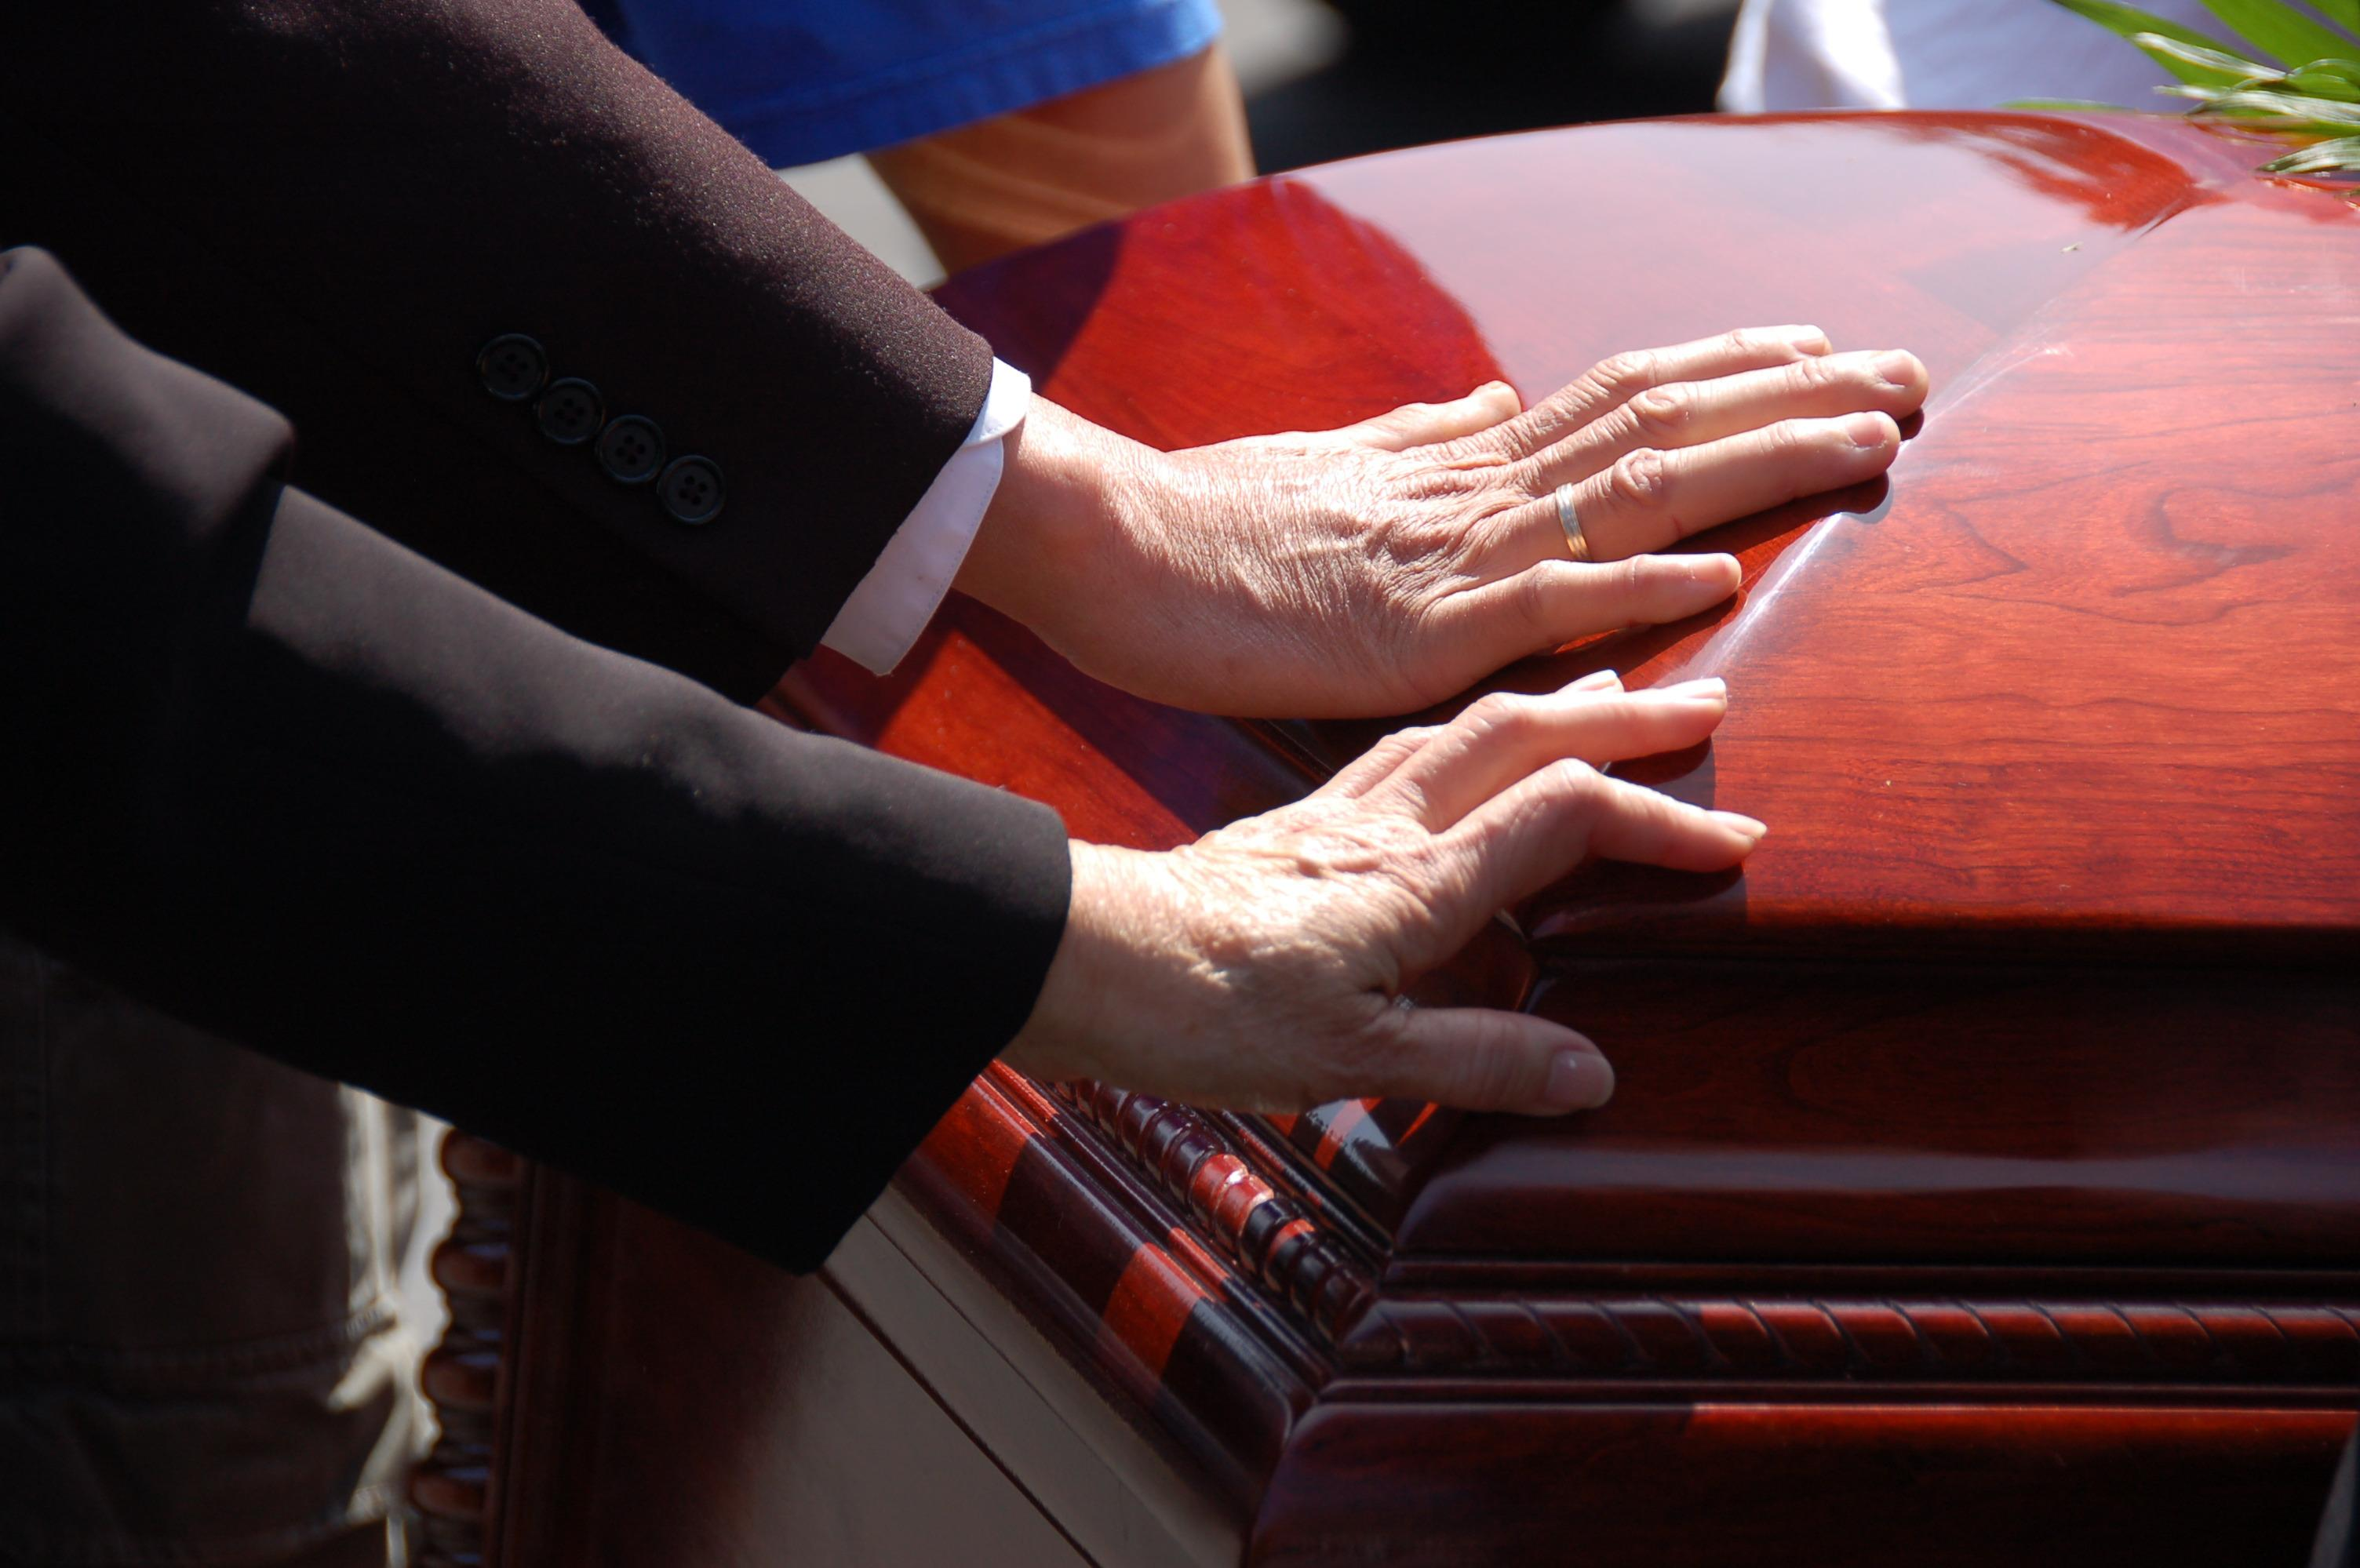 Local Cremation provides full service funerals and simple graveside services.